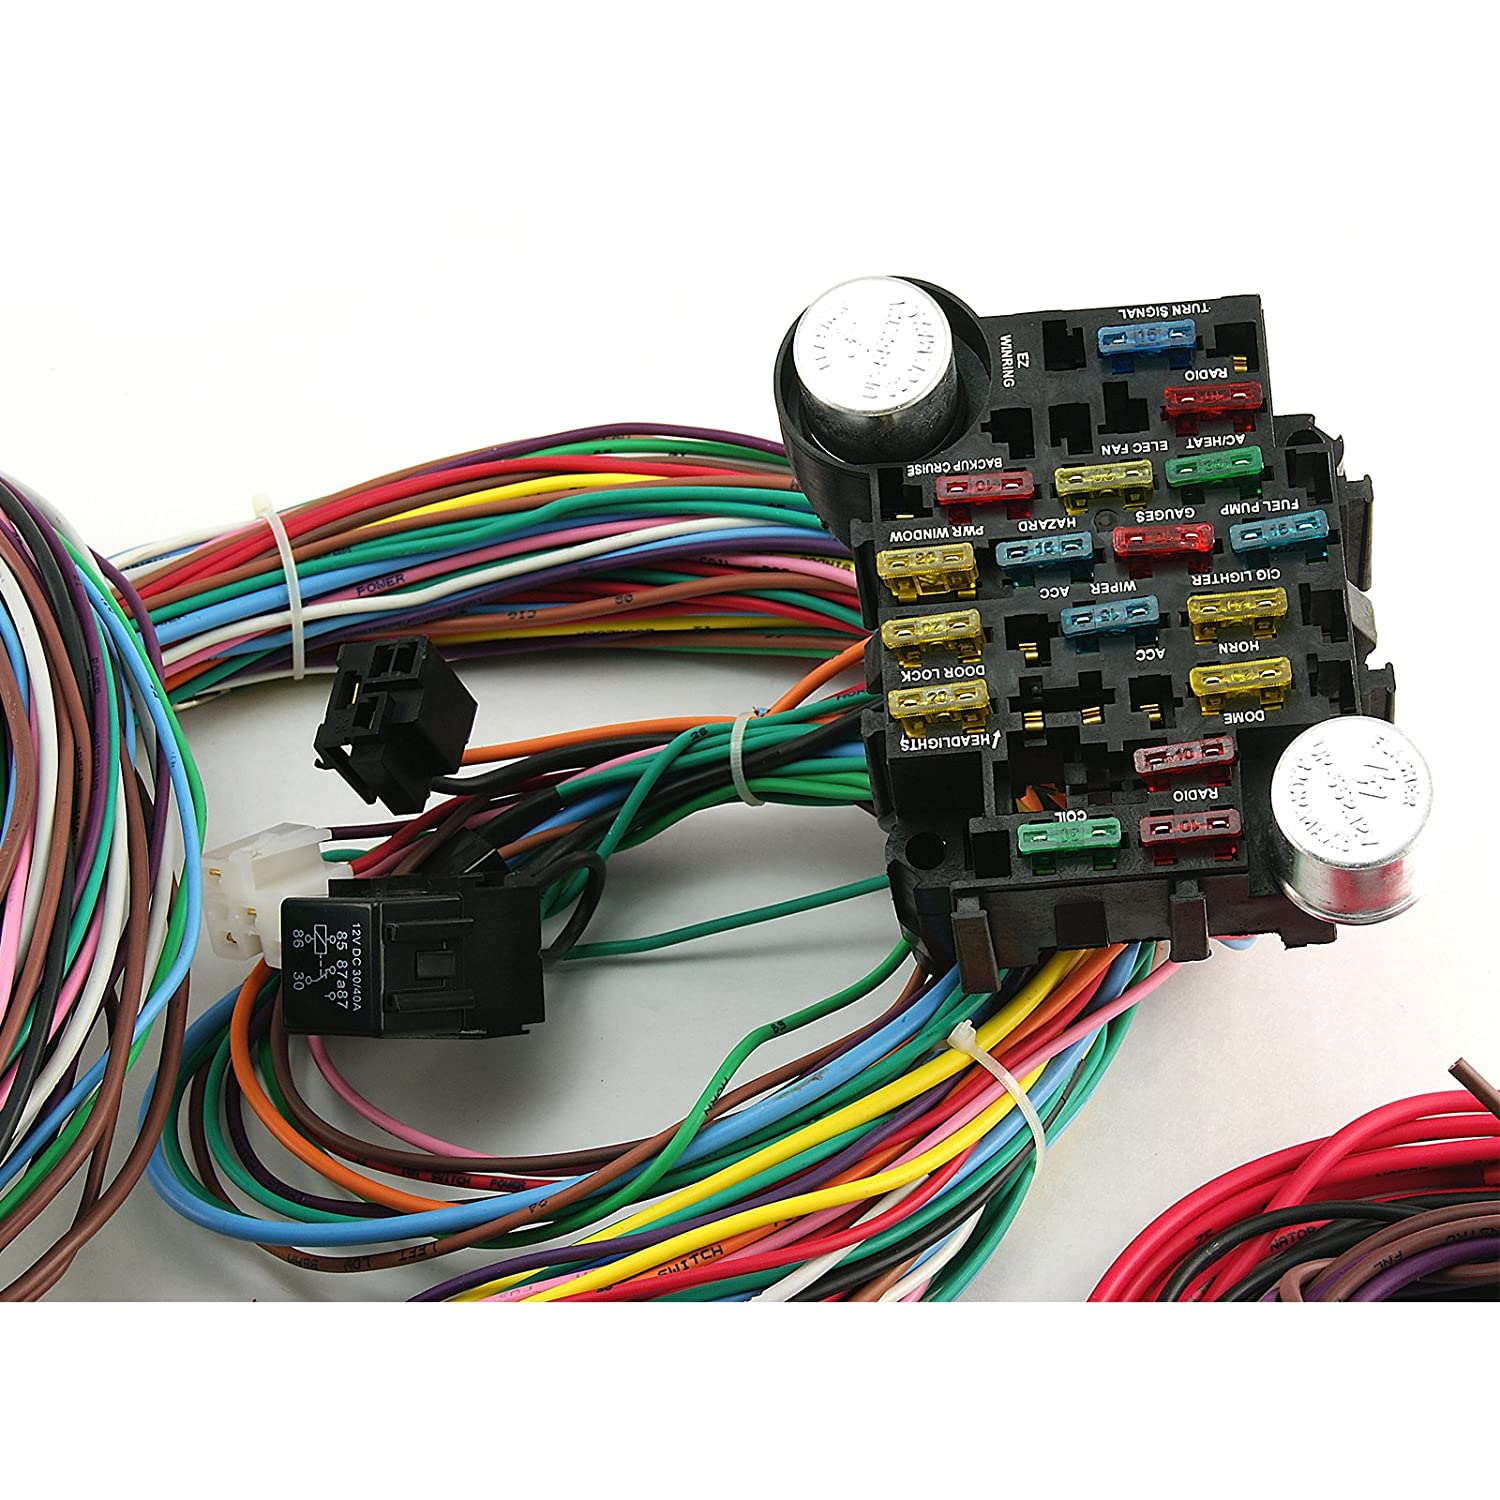 81pmBpTXibL._SL1500_ amazon com speedmaster pce368 1002 wiring harnesses automotive Mallory Unilite Ignition Wiring Diagram at edmiracle.co